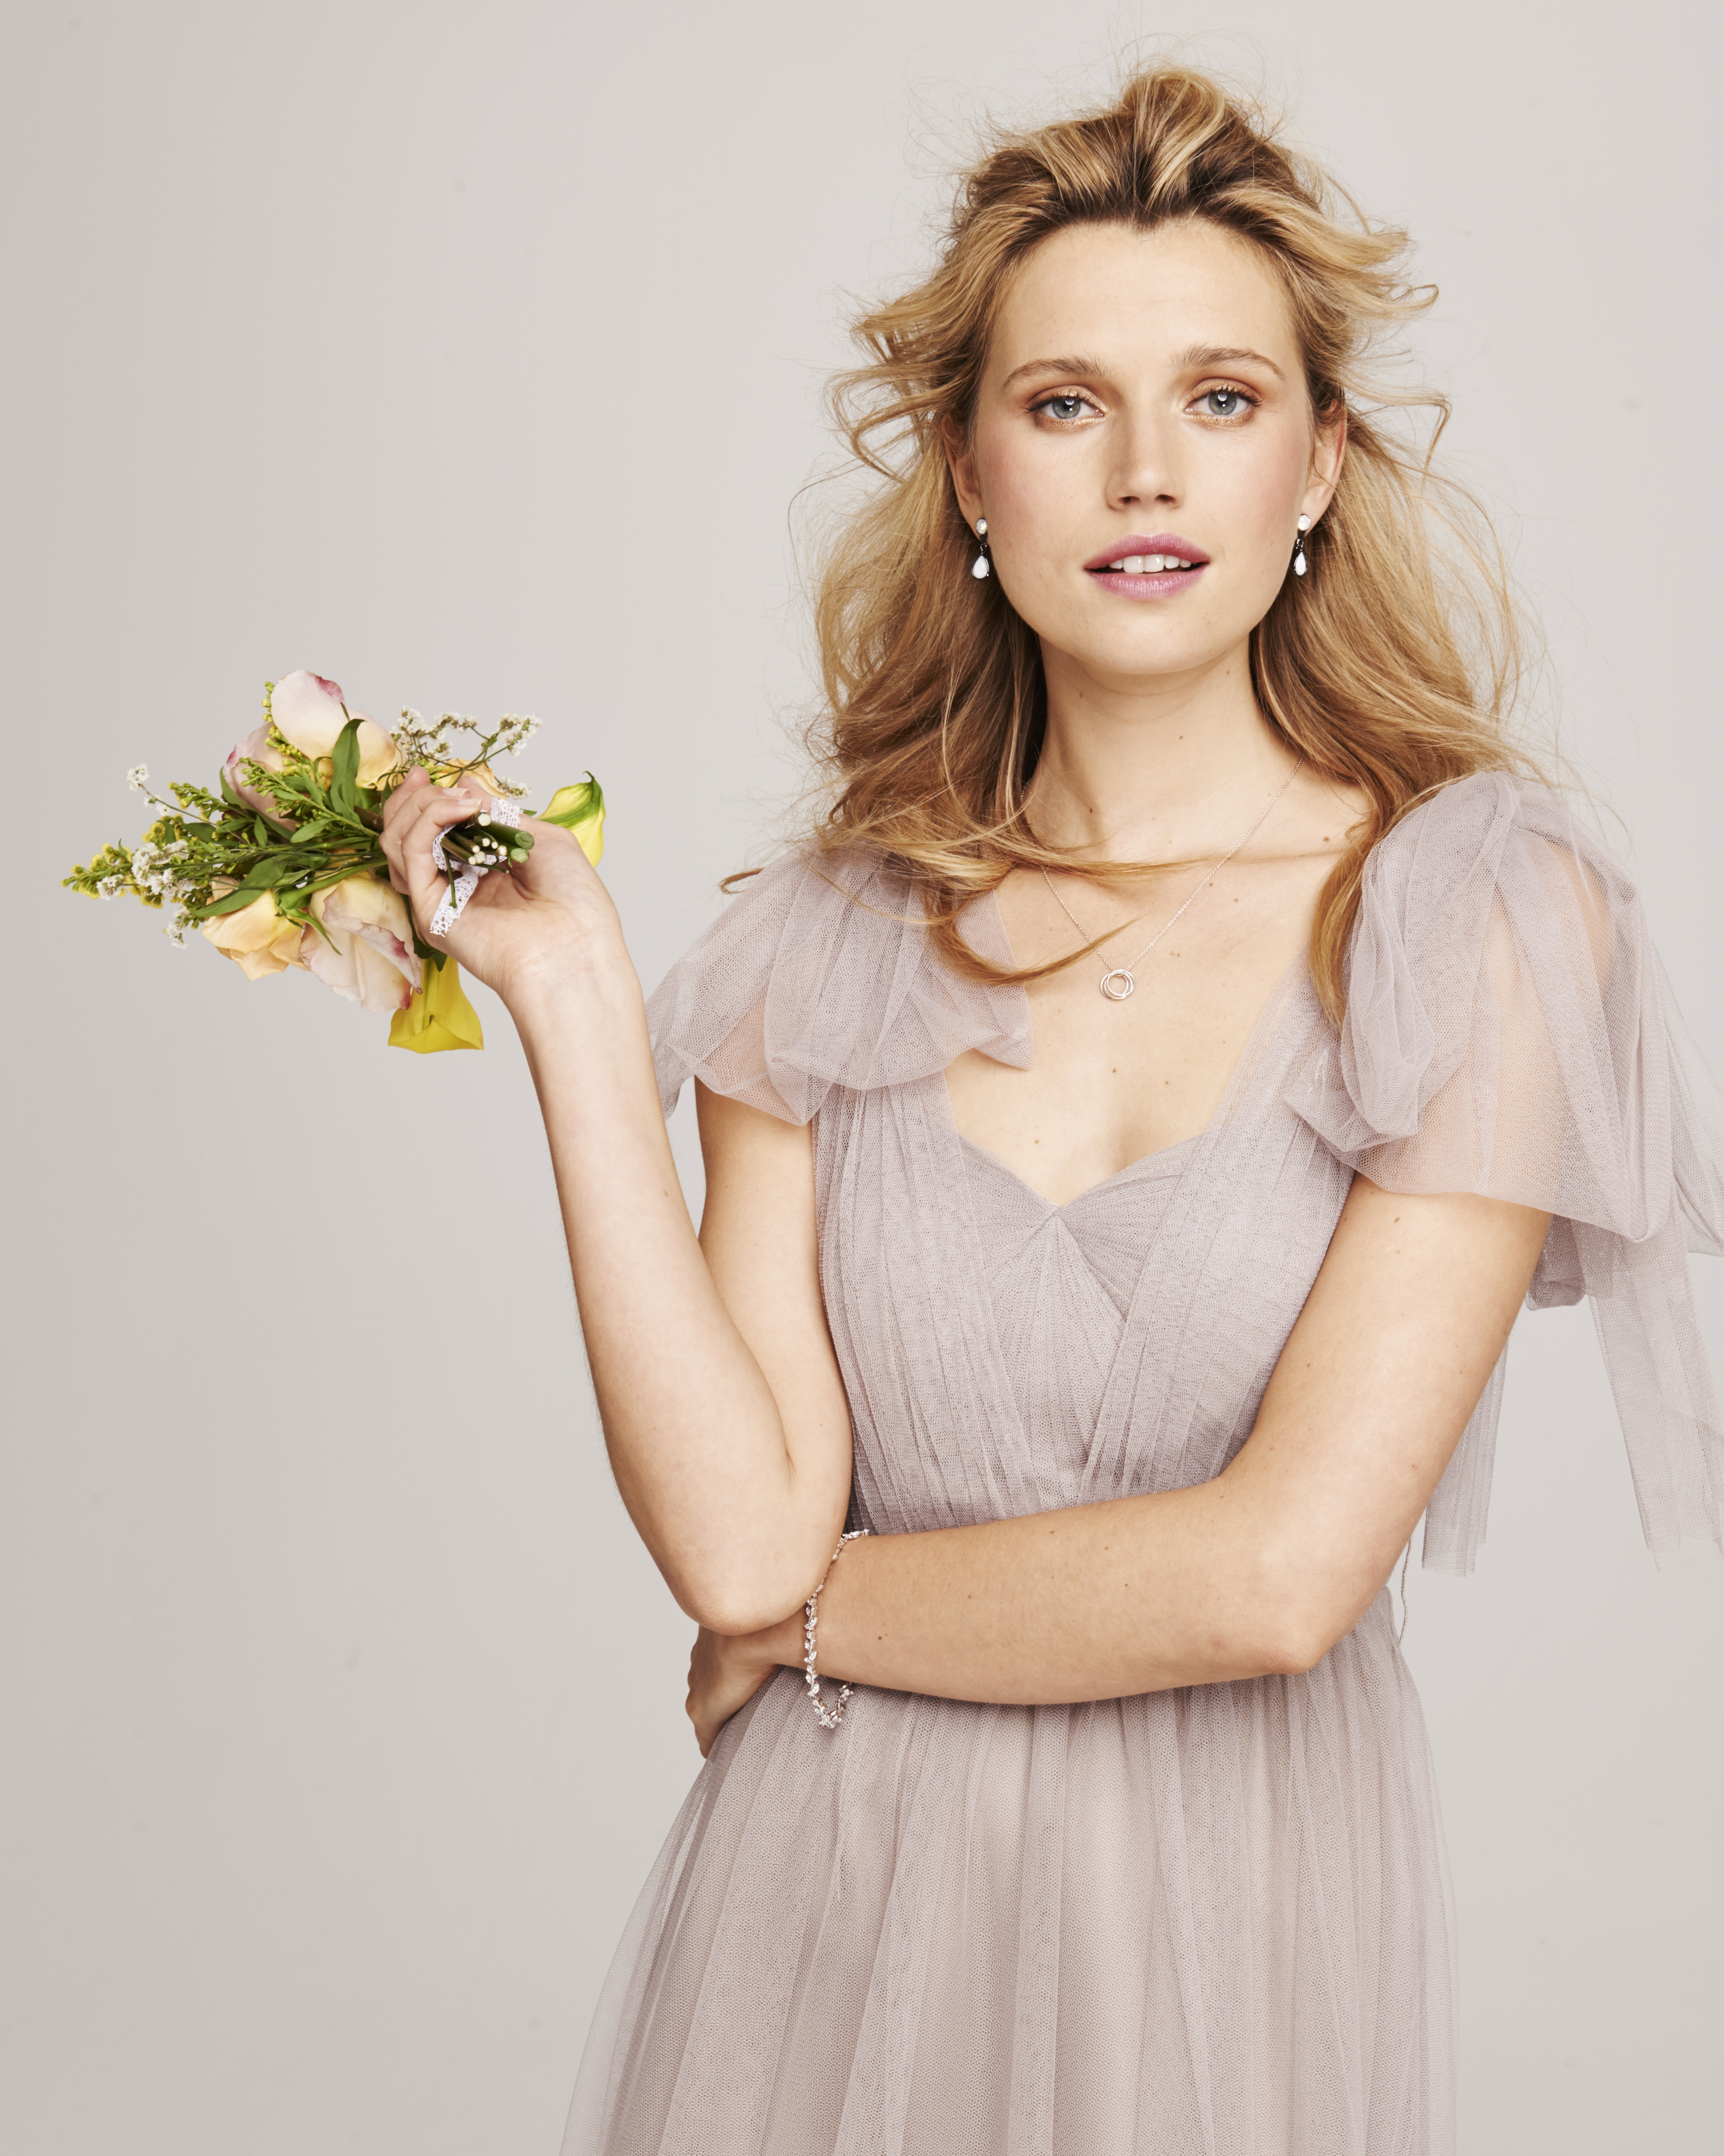 Bridesmaid dresses from nordstrom weddings oh lovely day oh bridesmaid dresses from nordstrom weddings oh lovely day ombrellifo Images